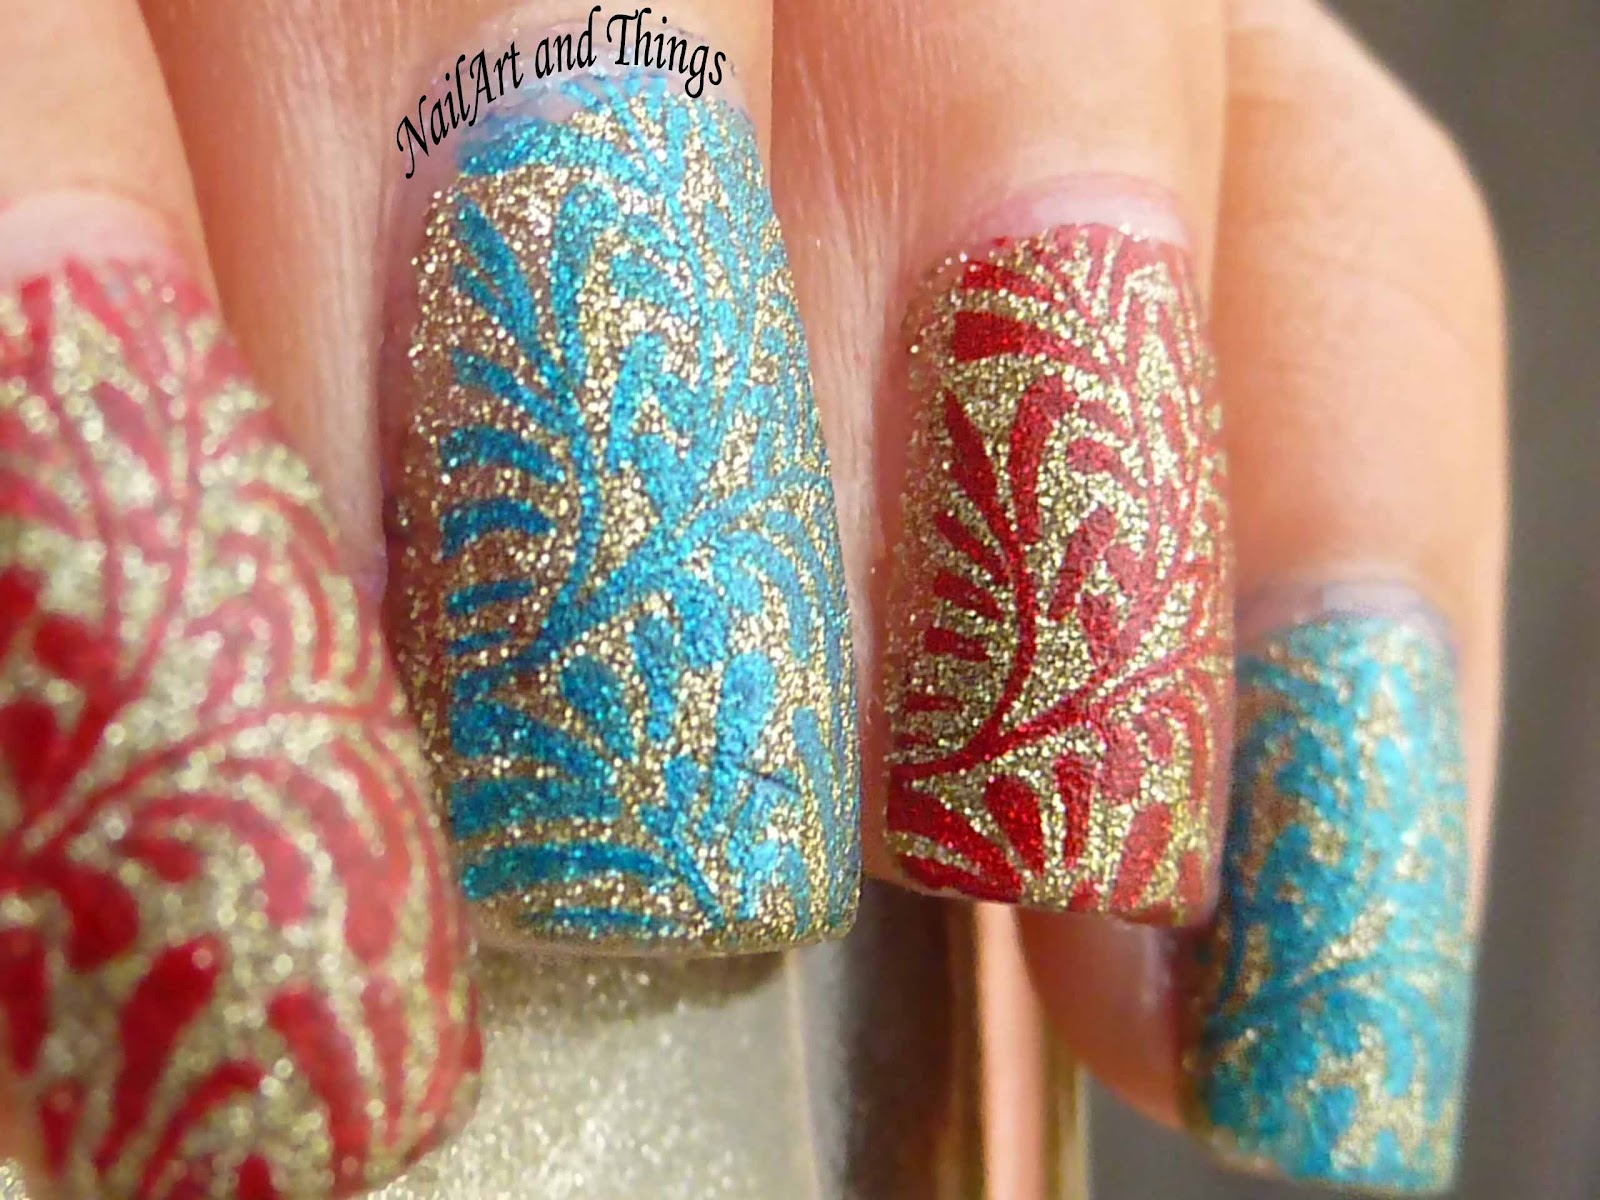 NailArt and Things: Alternate Nails + Konad M83 Stamping Nail Art